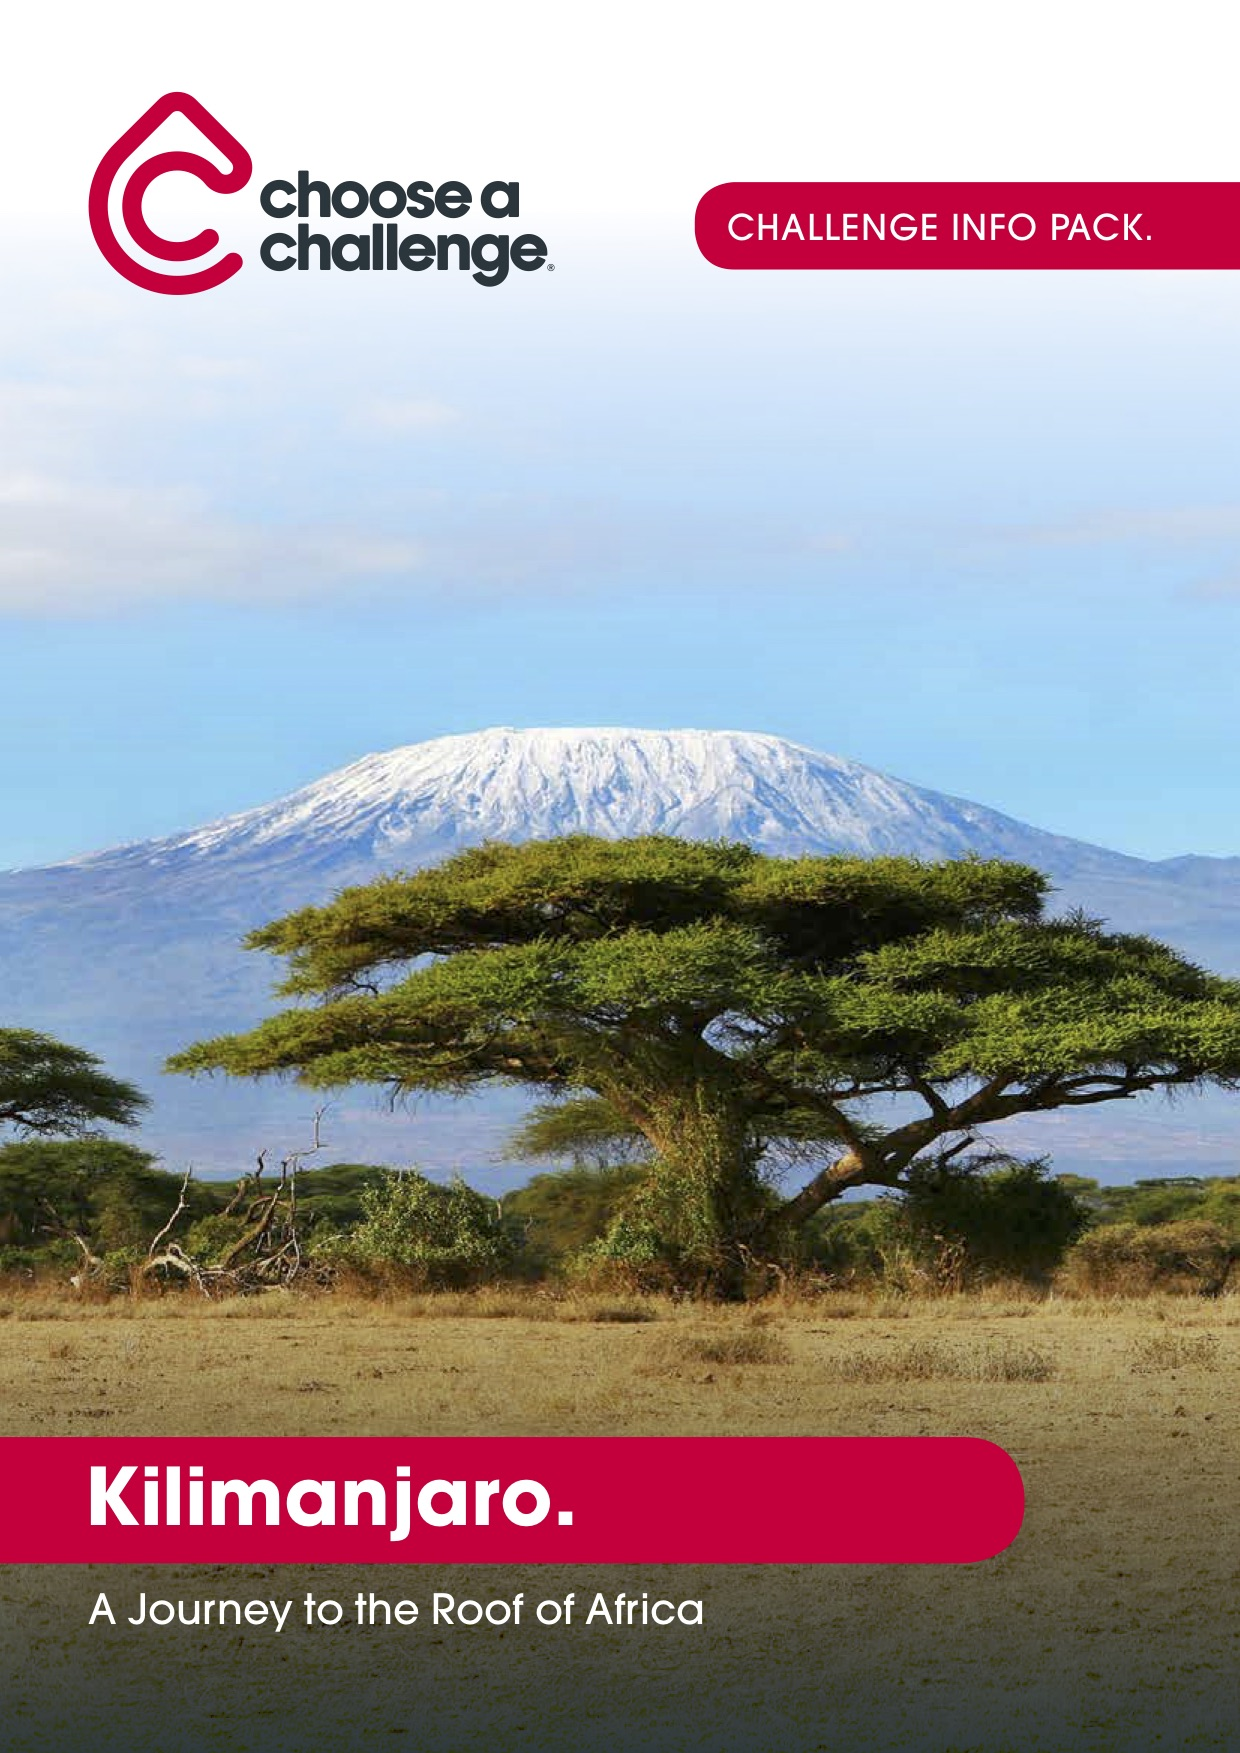 Mt. Kilimanjaro - Download the full trip brochure to learn more about your accommodations, pricing and the trip itself